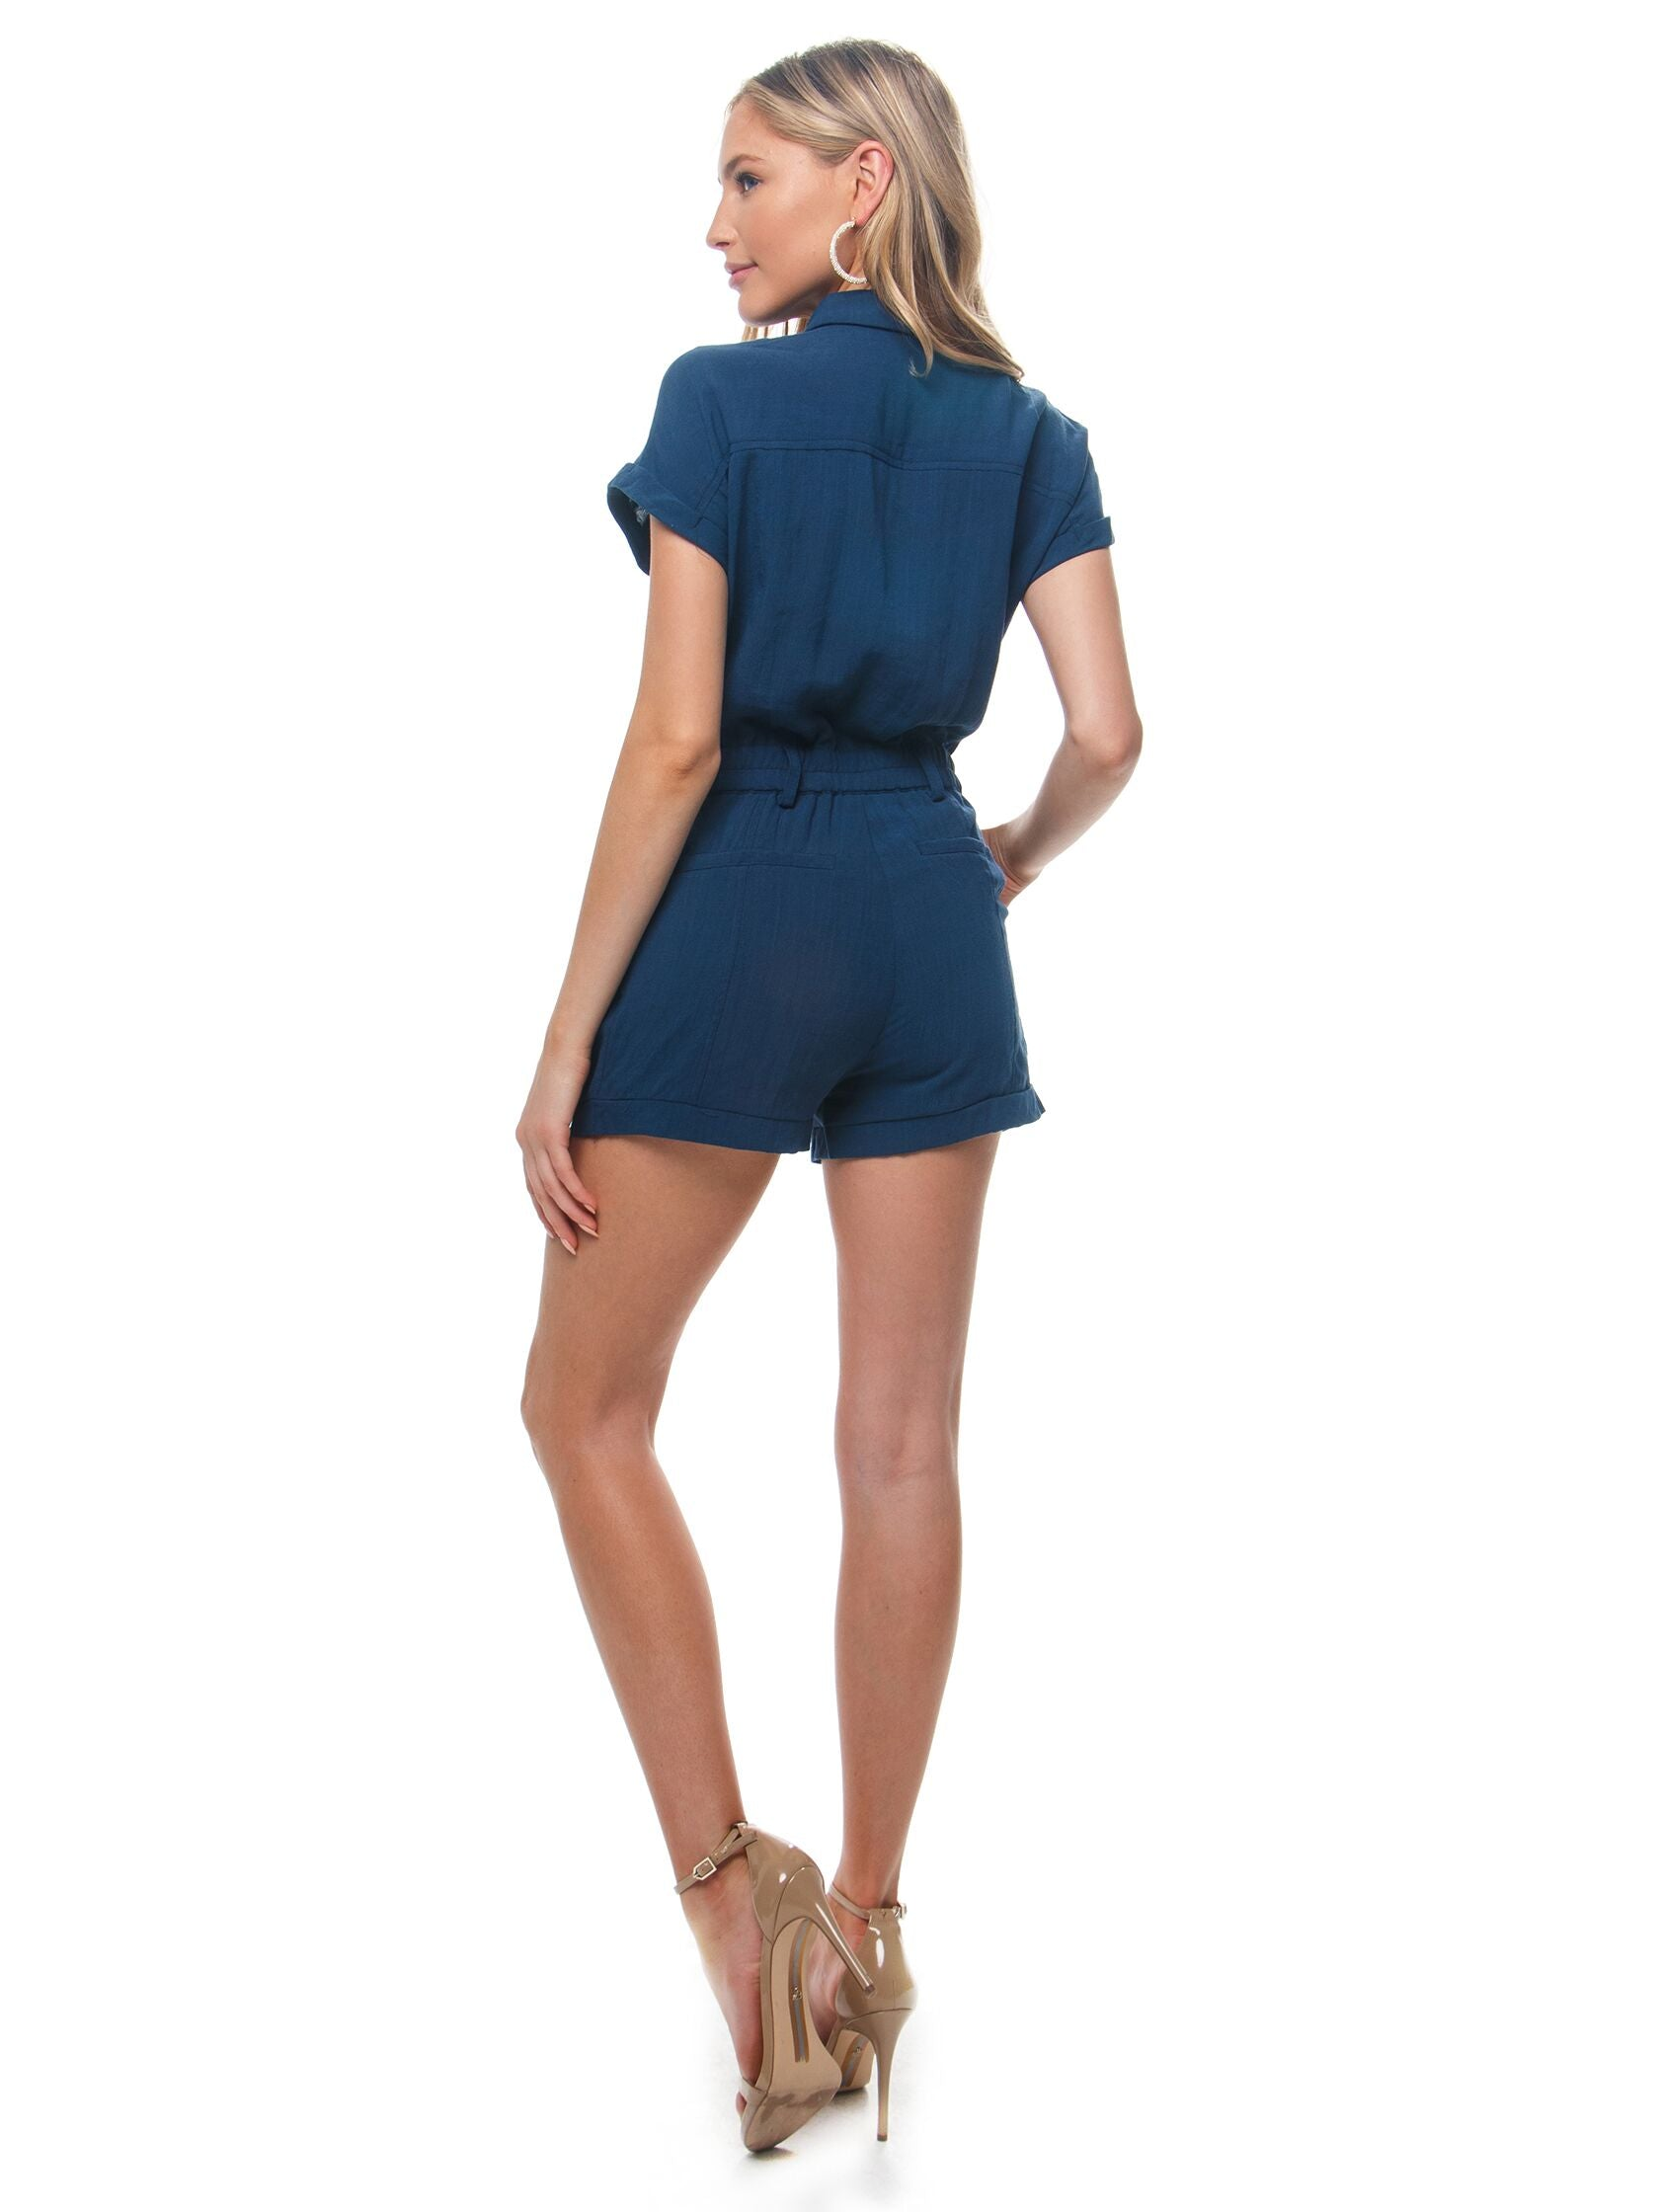 Women wearing a romper rental from Heartloom called Jude Romper